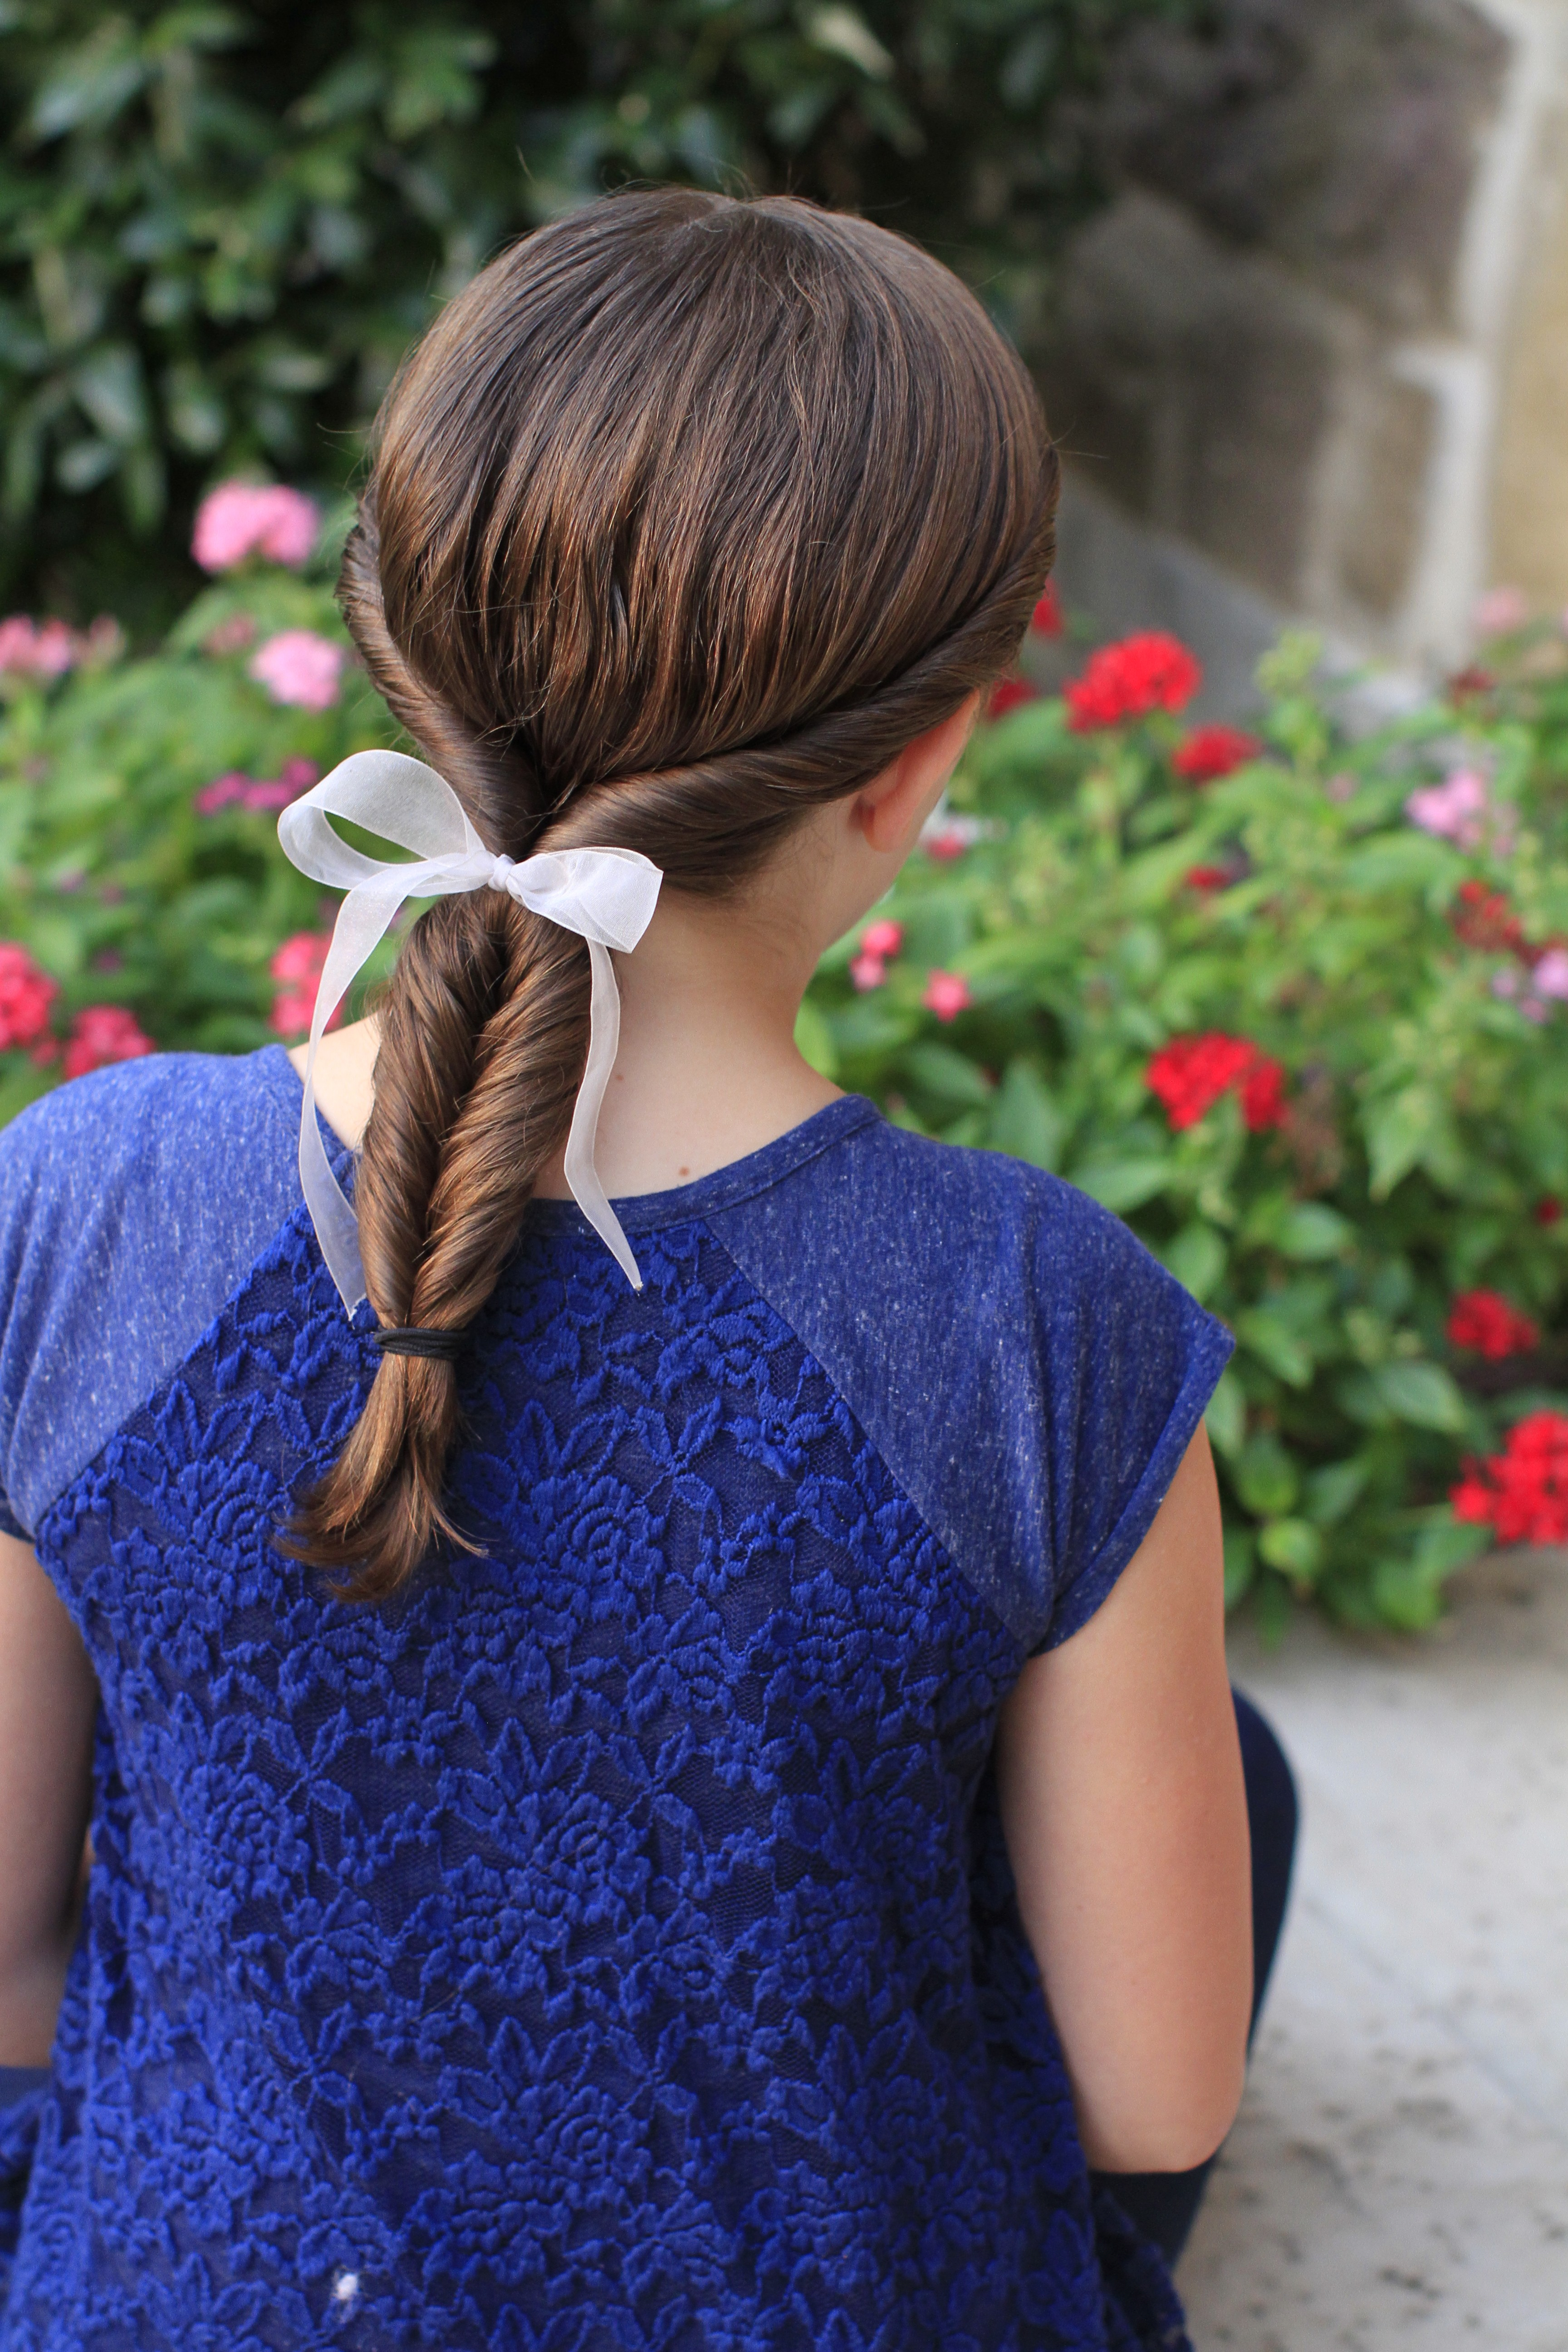 Hairstyles for Girls: Double-Twist Ponytail   Cute Girls Hairstyles